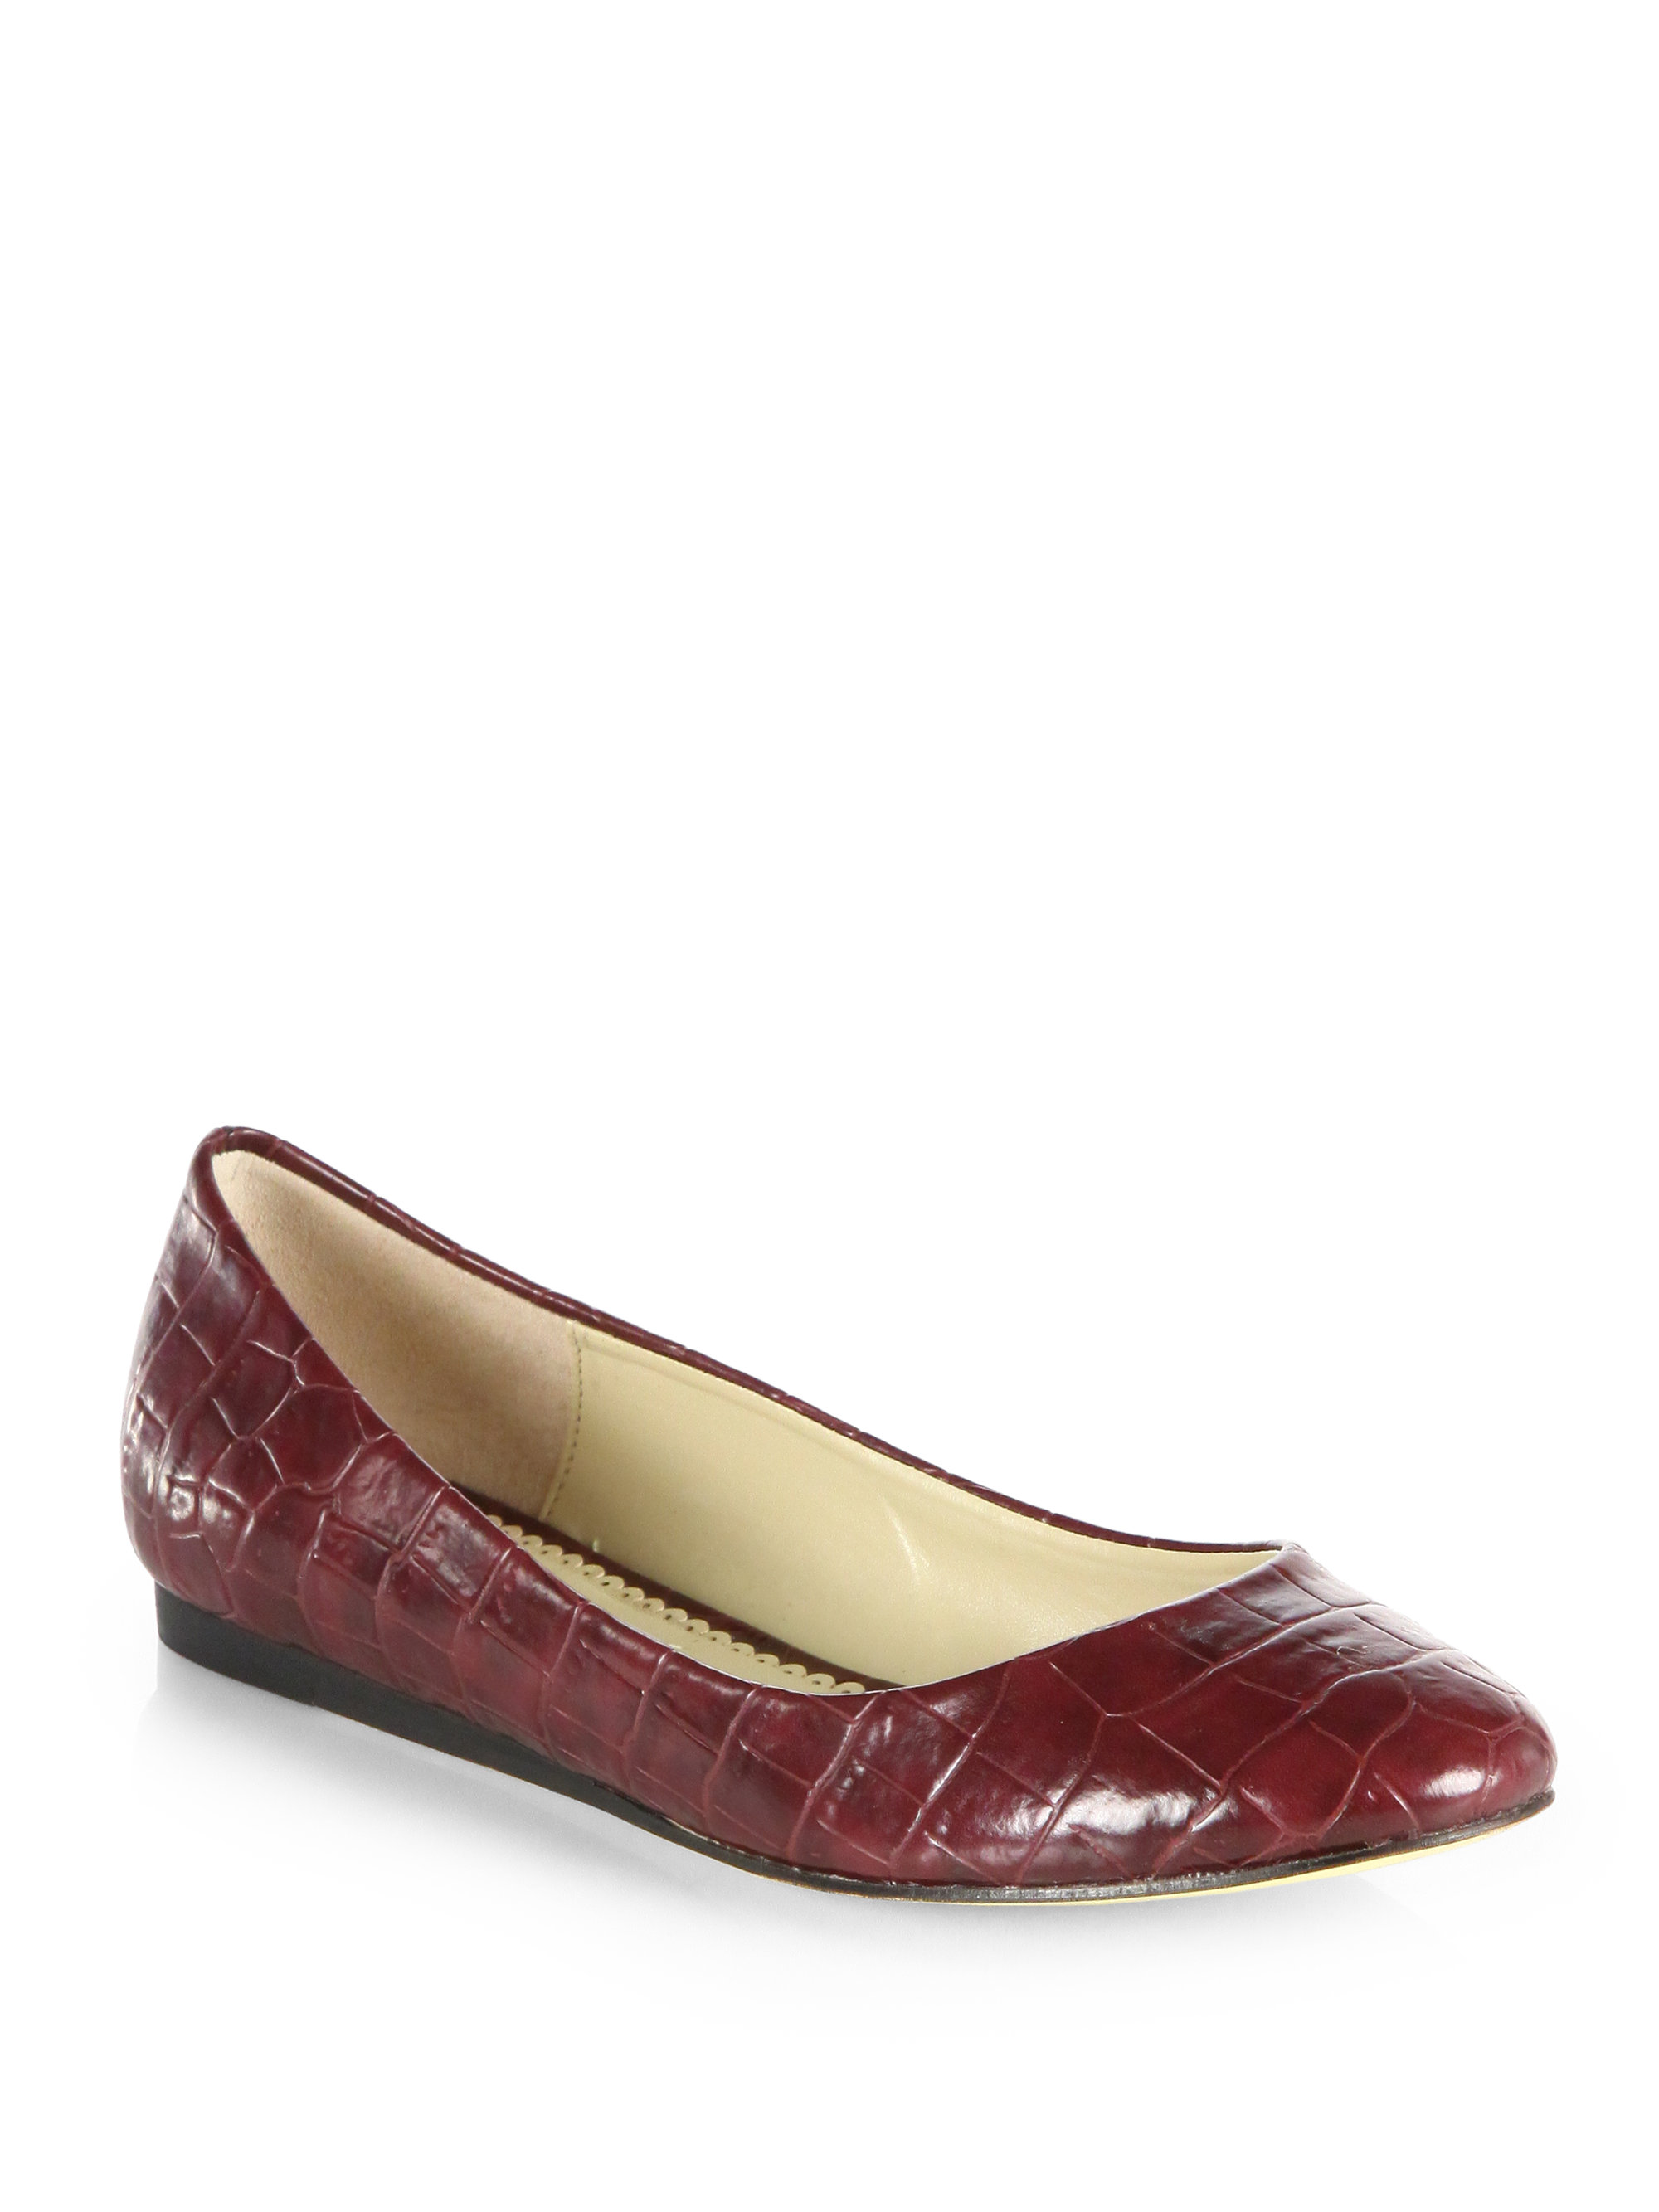 Top Quality Online Buy Cheap Shop Stella mc cartney Flats Clearance Countdown Package Discount Shop Offer Manchester Great Sale For Sale G4UZLx3y